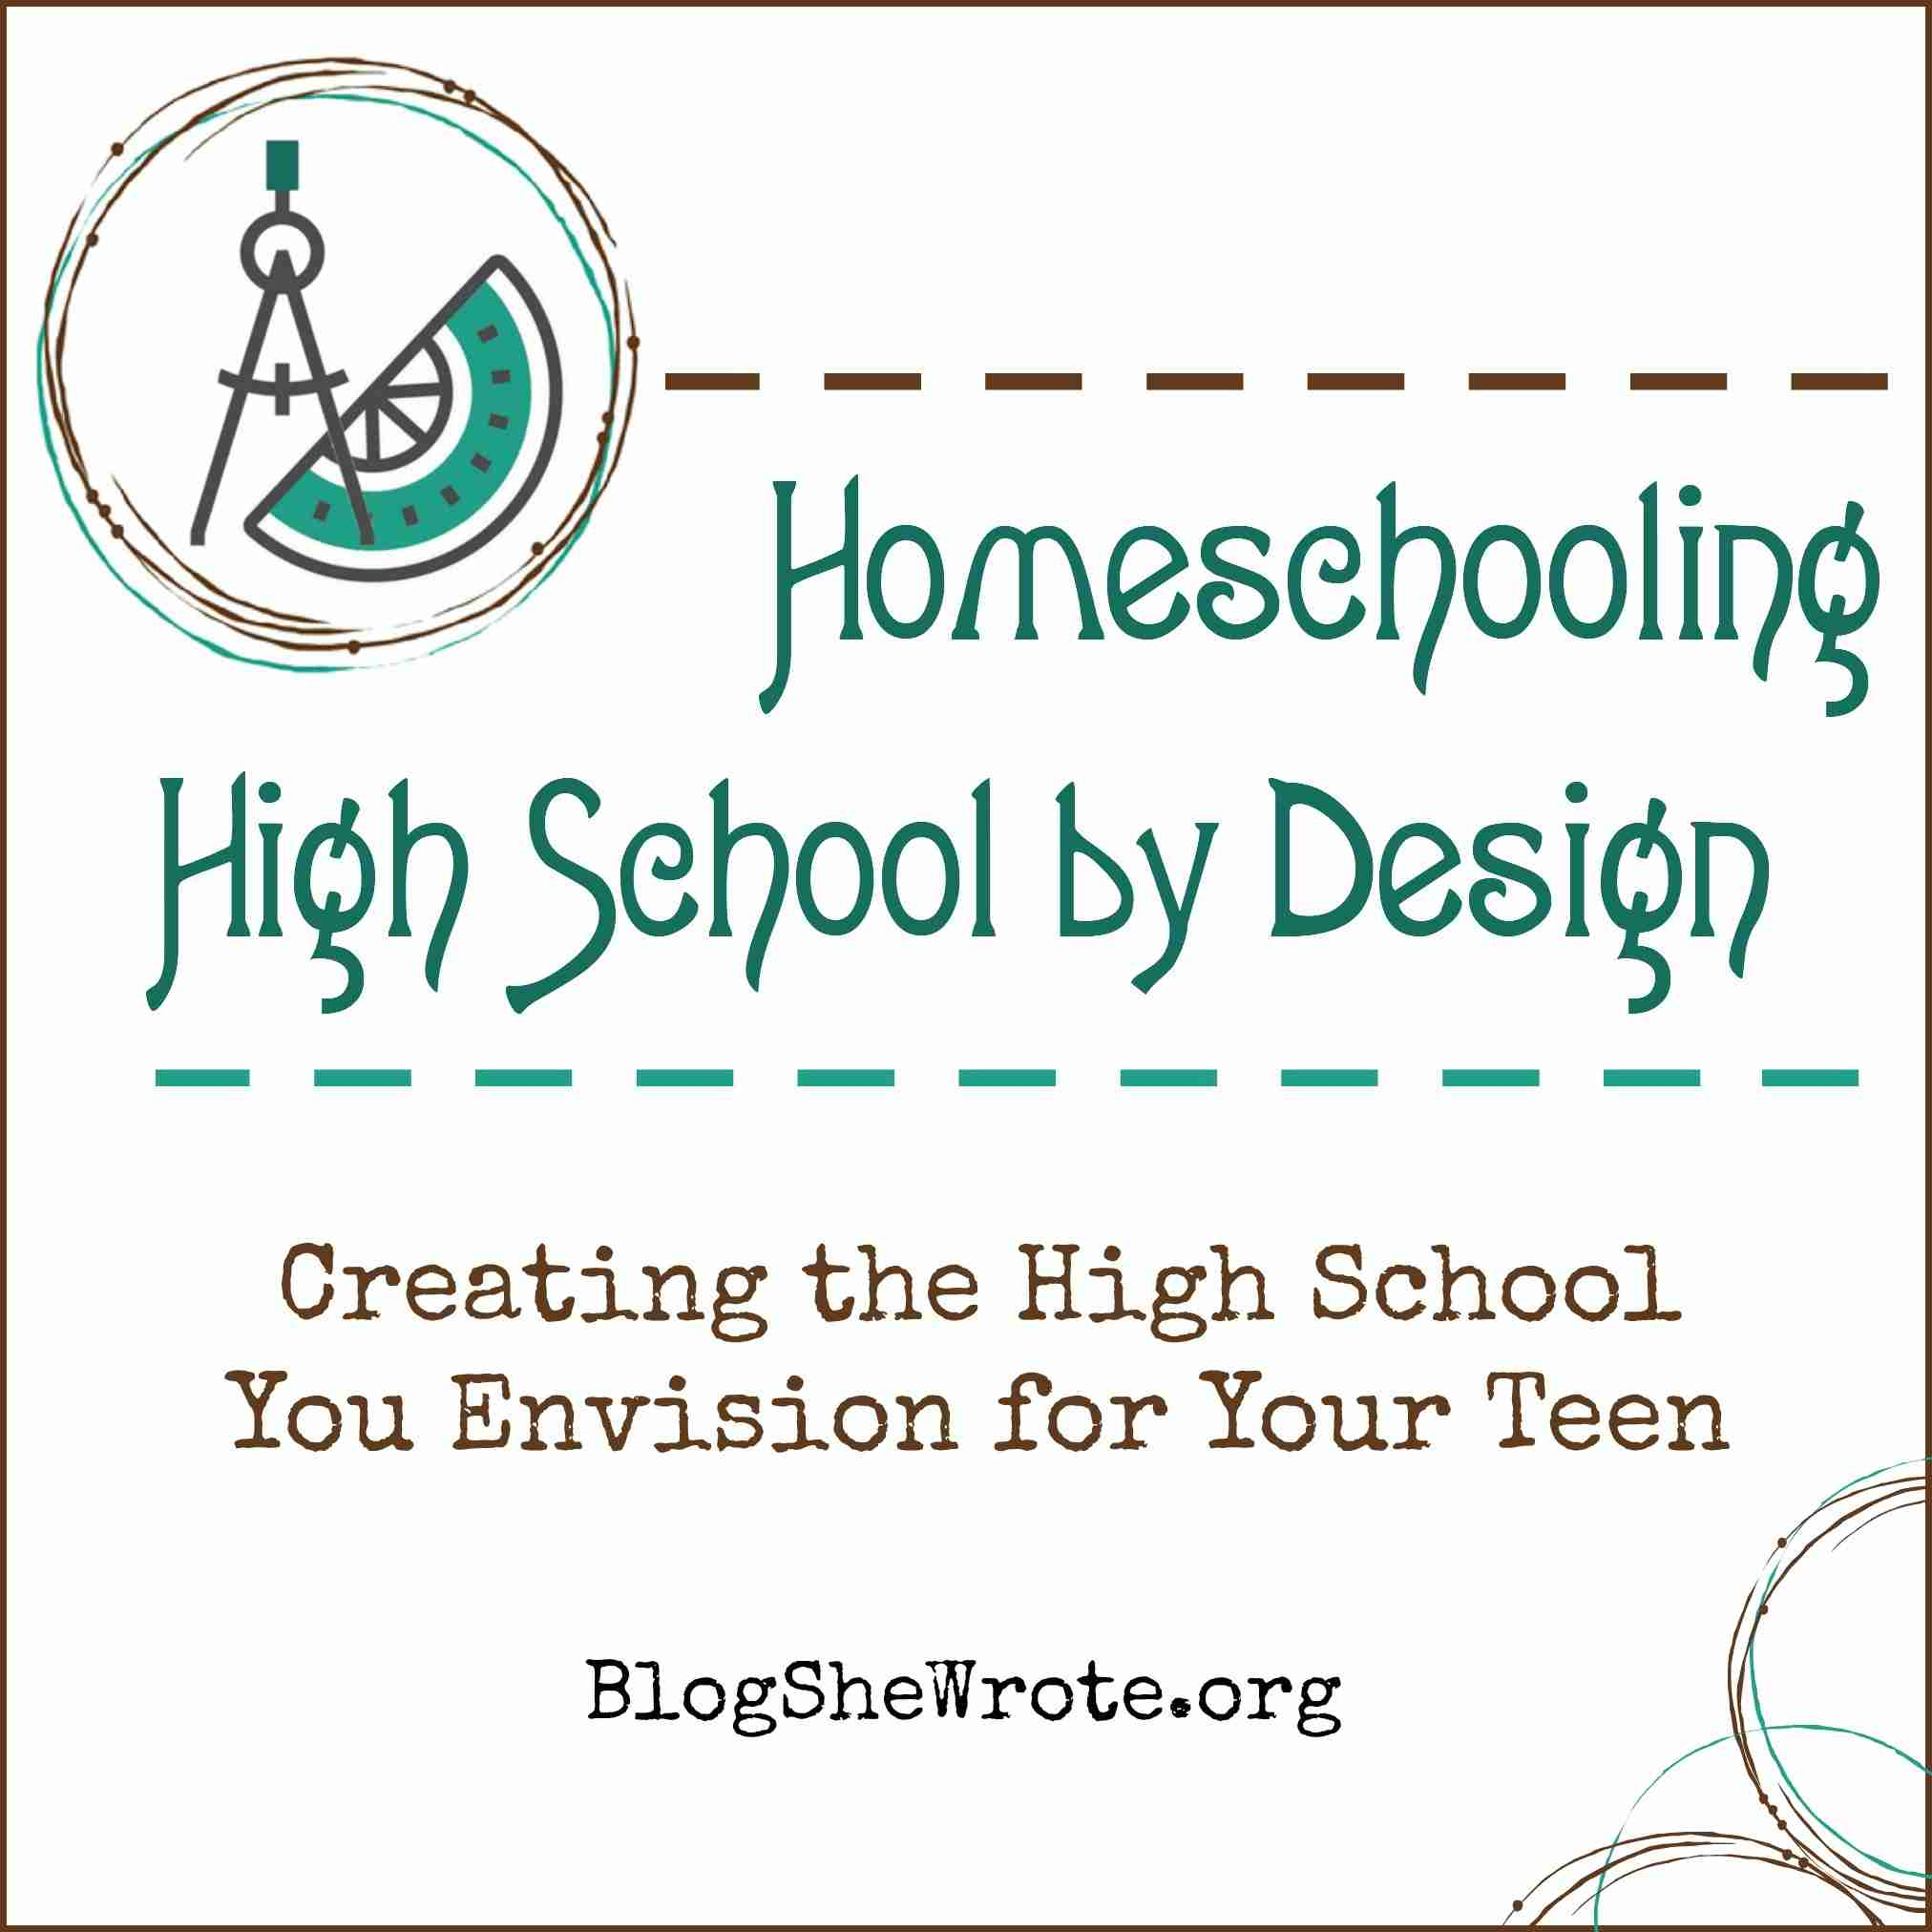 8th Grade Homeschool Curriculum With High School In Mind